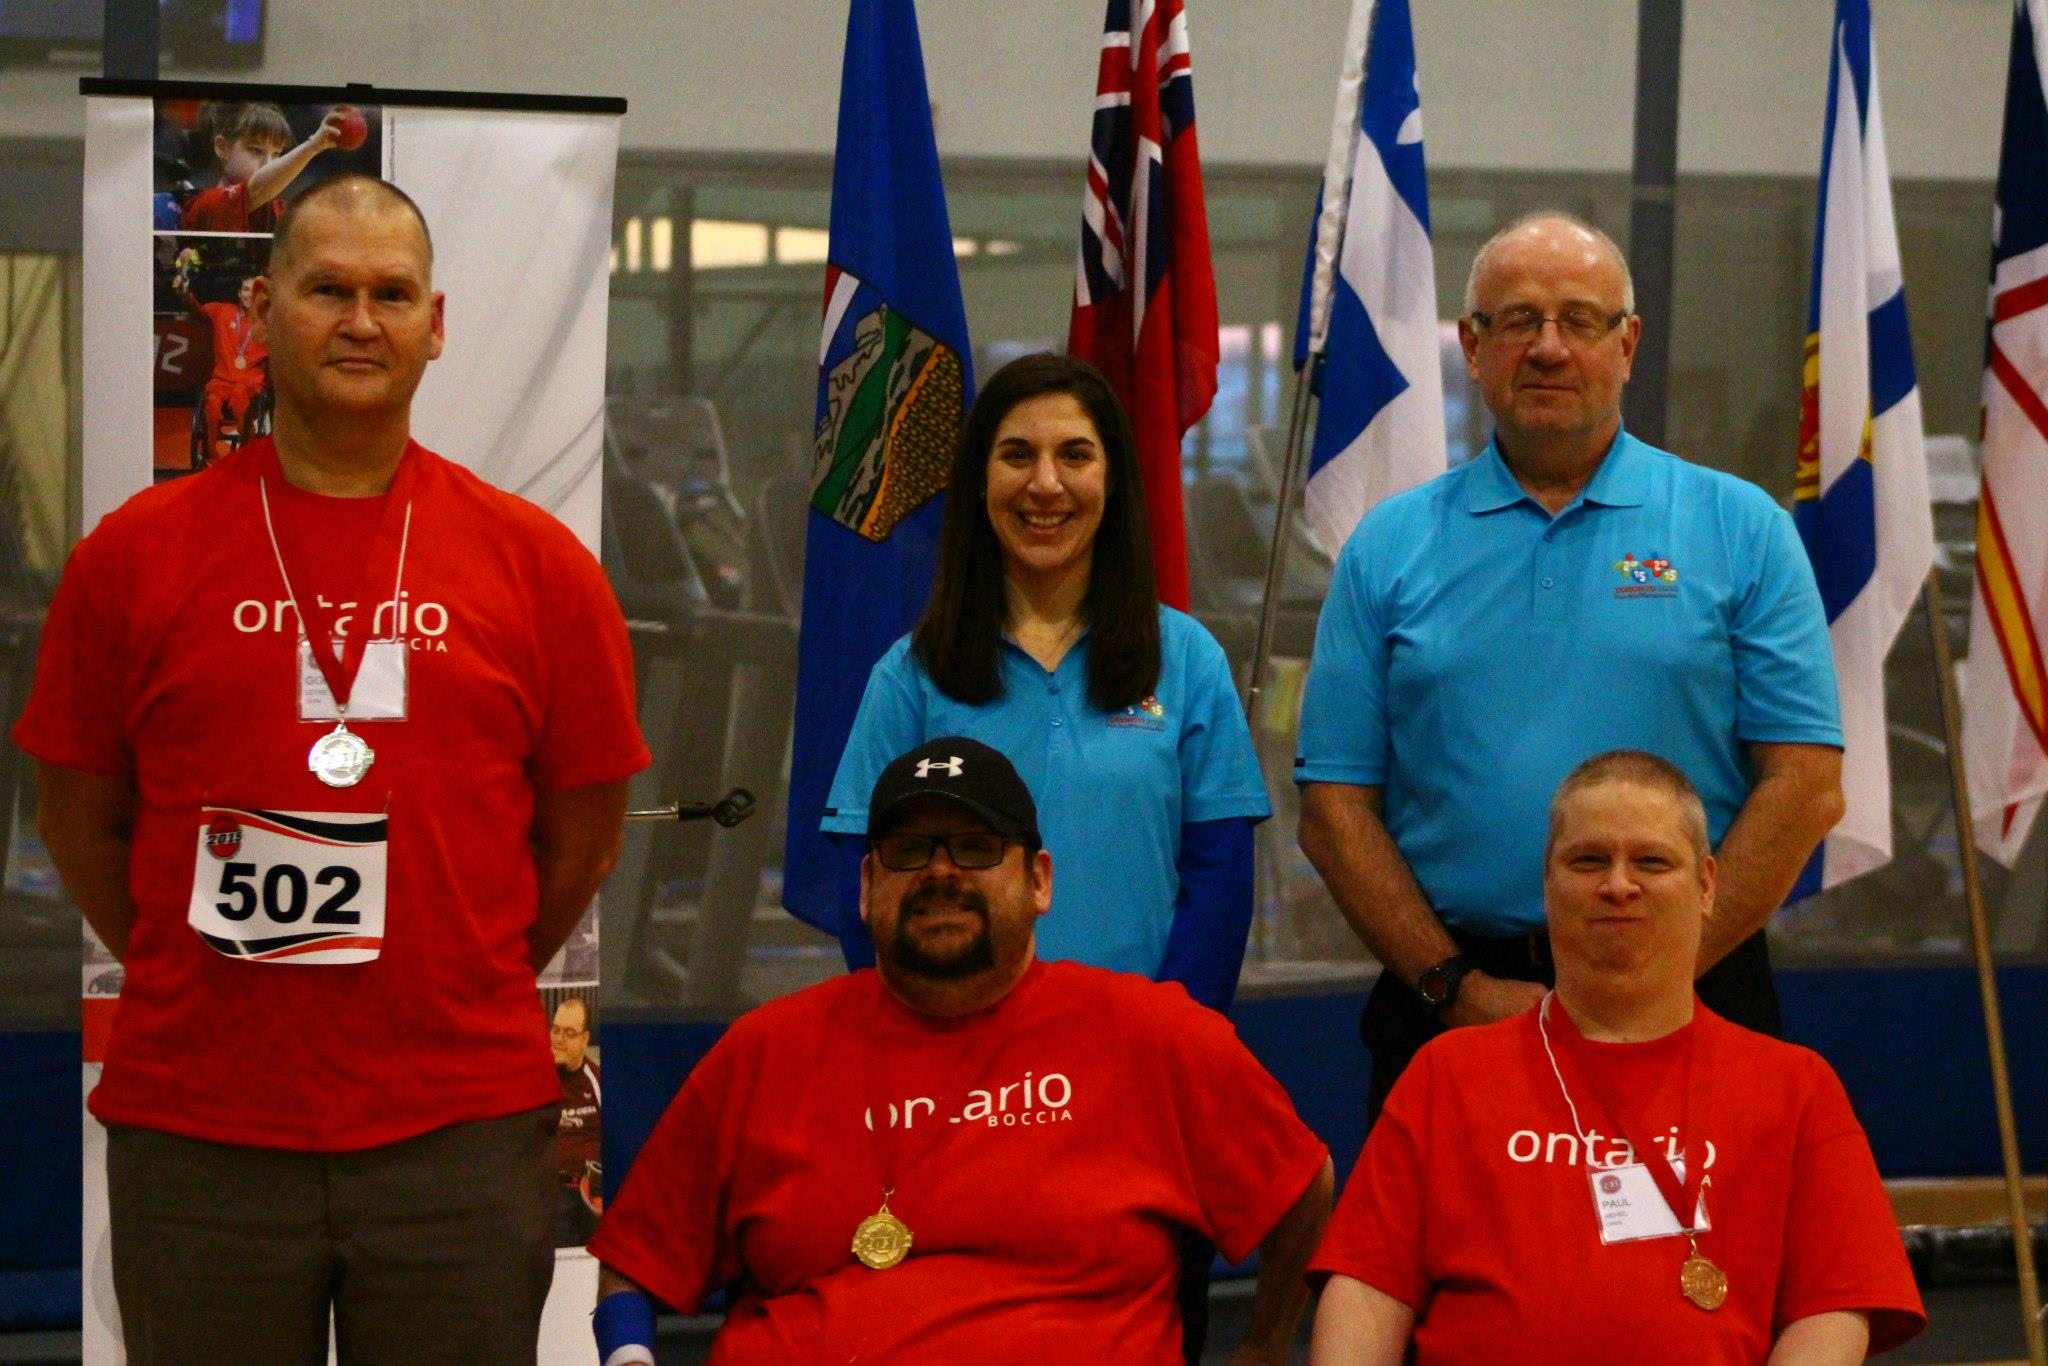 Gio Desero (front row, centre) claimed the gold medal in the open competition ©Canadian Cerebral Palsy Sports Association/Facebook